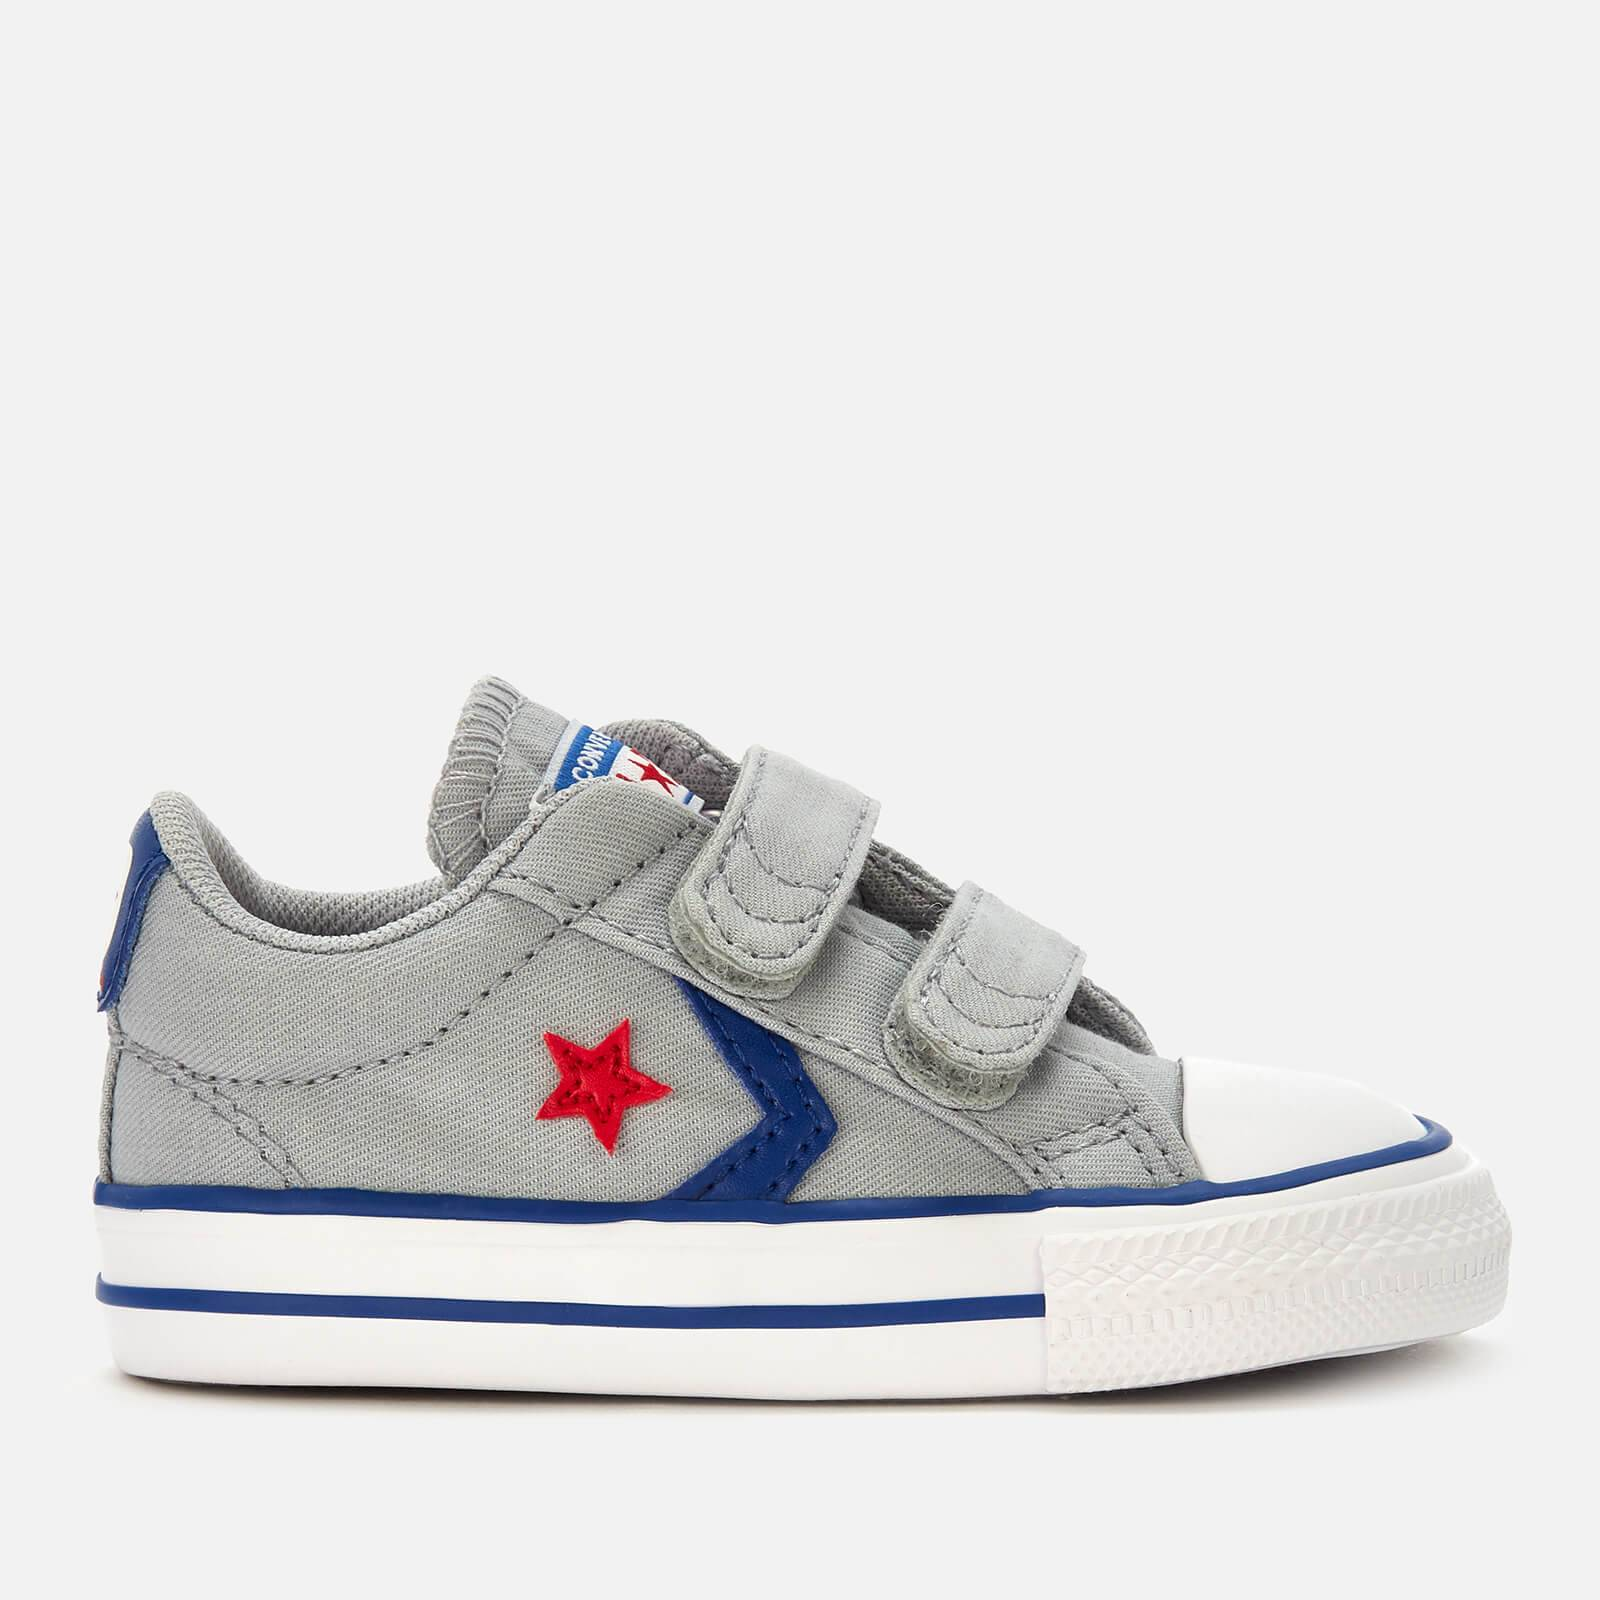 Converse Toddlers' Star Player 2 Velcro Ox Trainers - Wolf Grey/Blue/Enamel Red - UK 2 Toddler